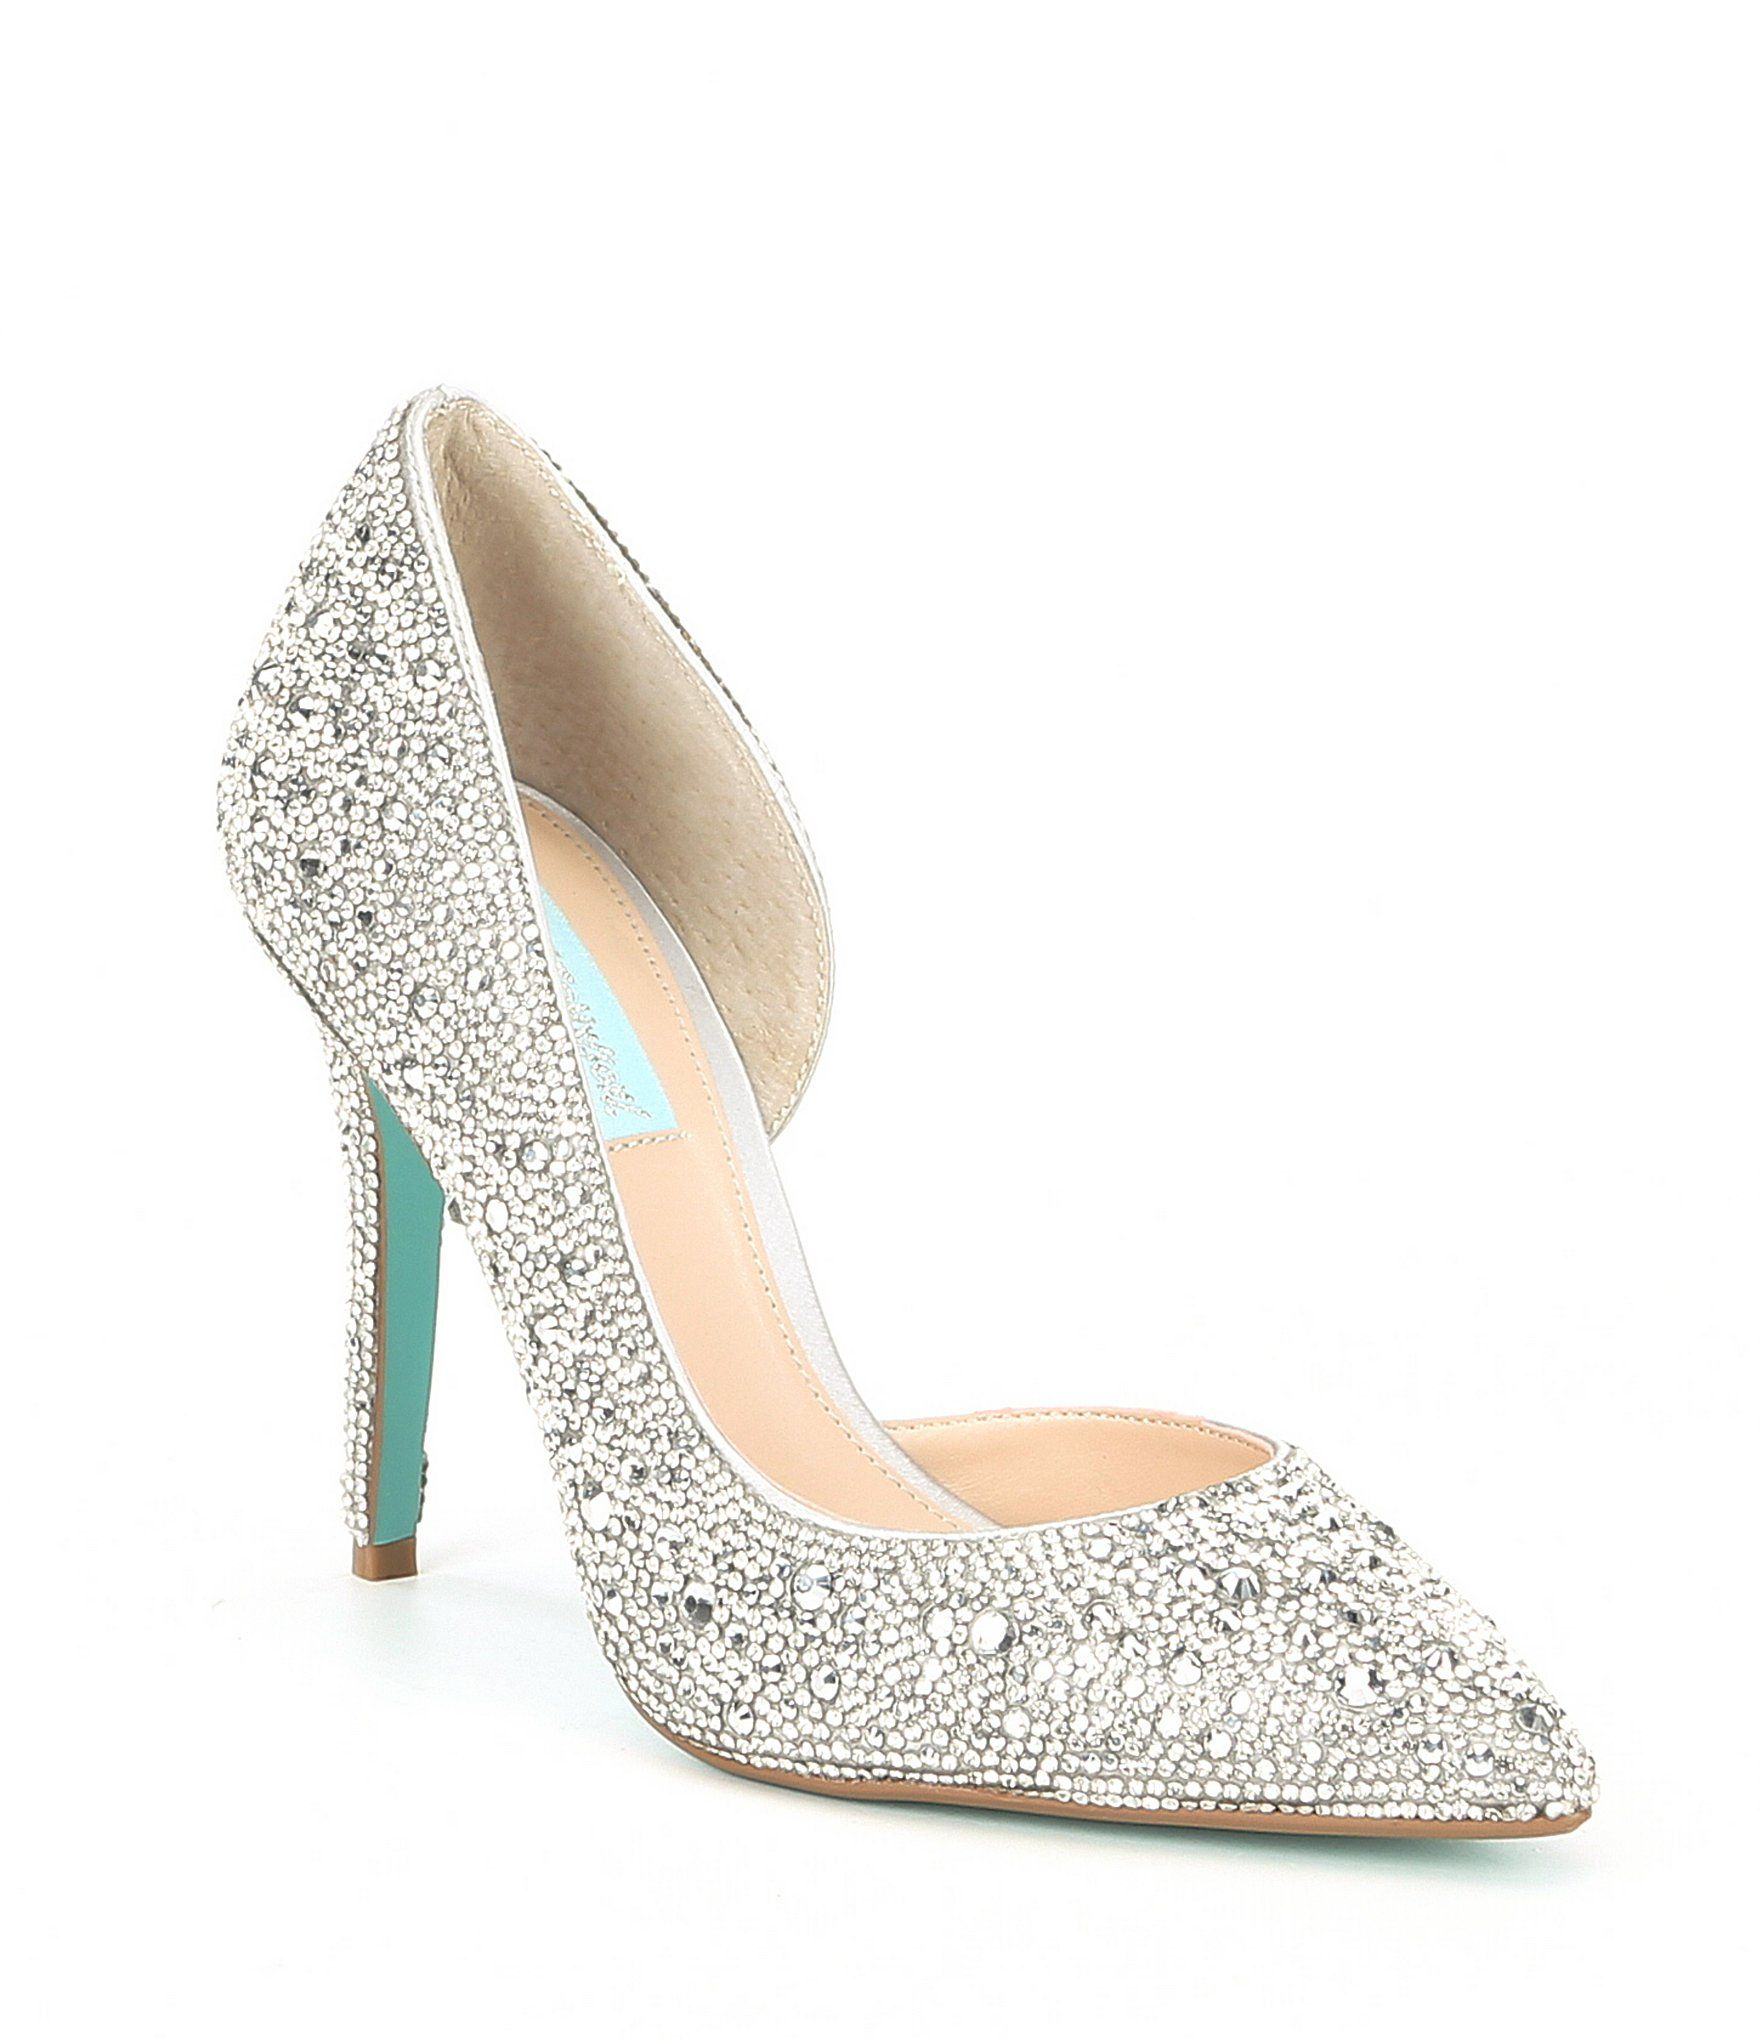 Navy blue dress shoes for wedding  Blue by Betsey Johnson Hazil Jeweled Pumps  shoes  Pinterest